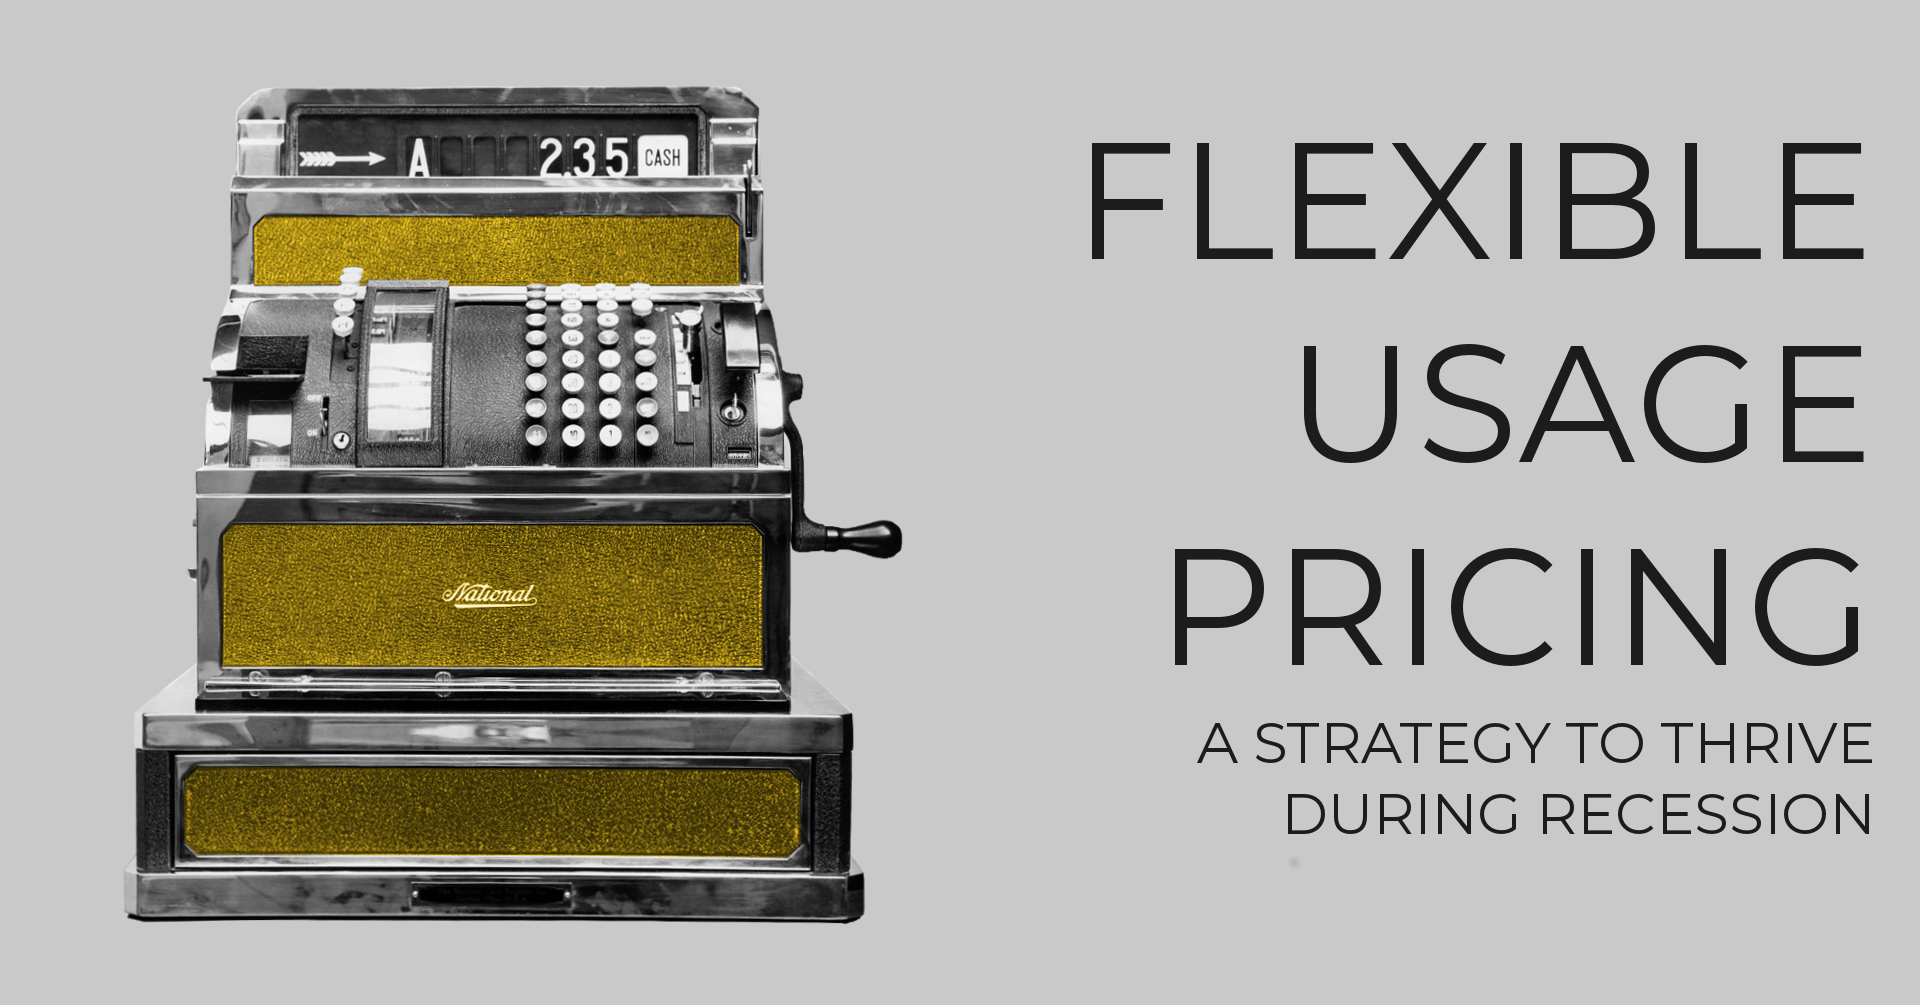 Flexible usage pricing. A strategy to thrive during recession